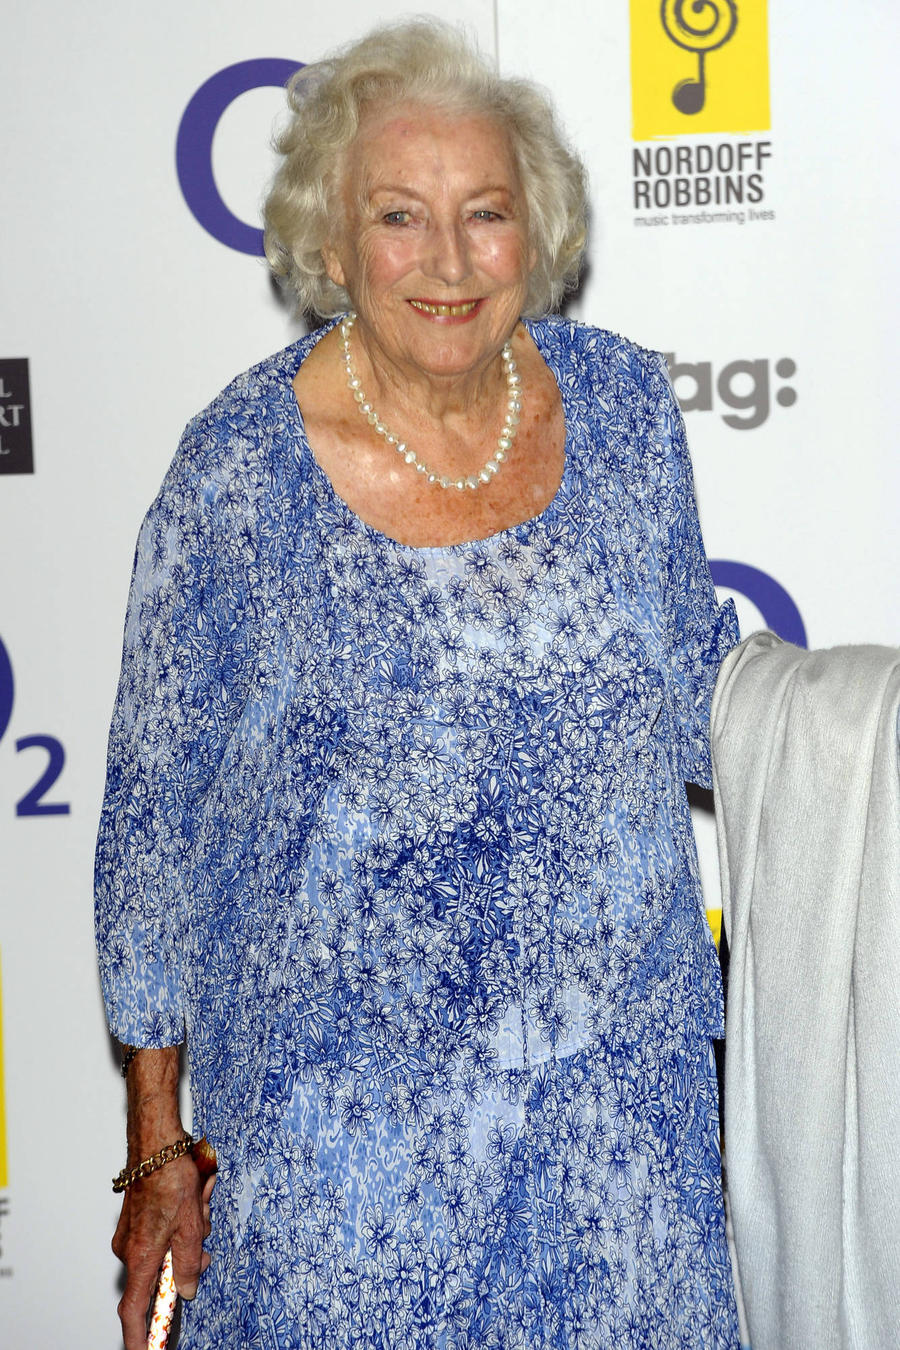 Dame Vera Lynn To Celebrate 100th Birthday With New Album